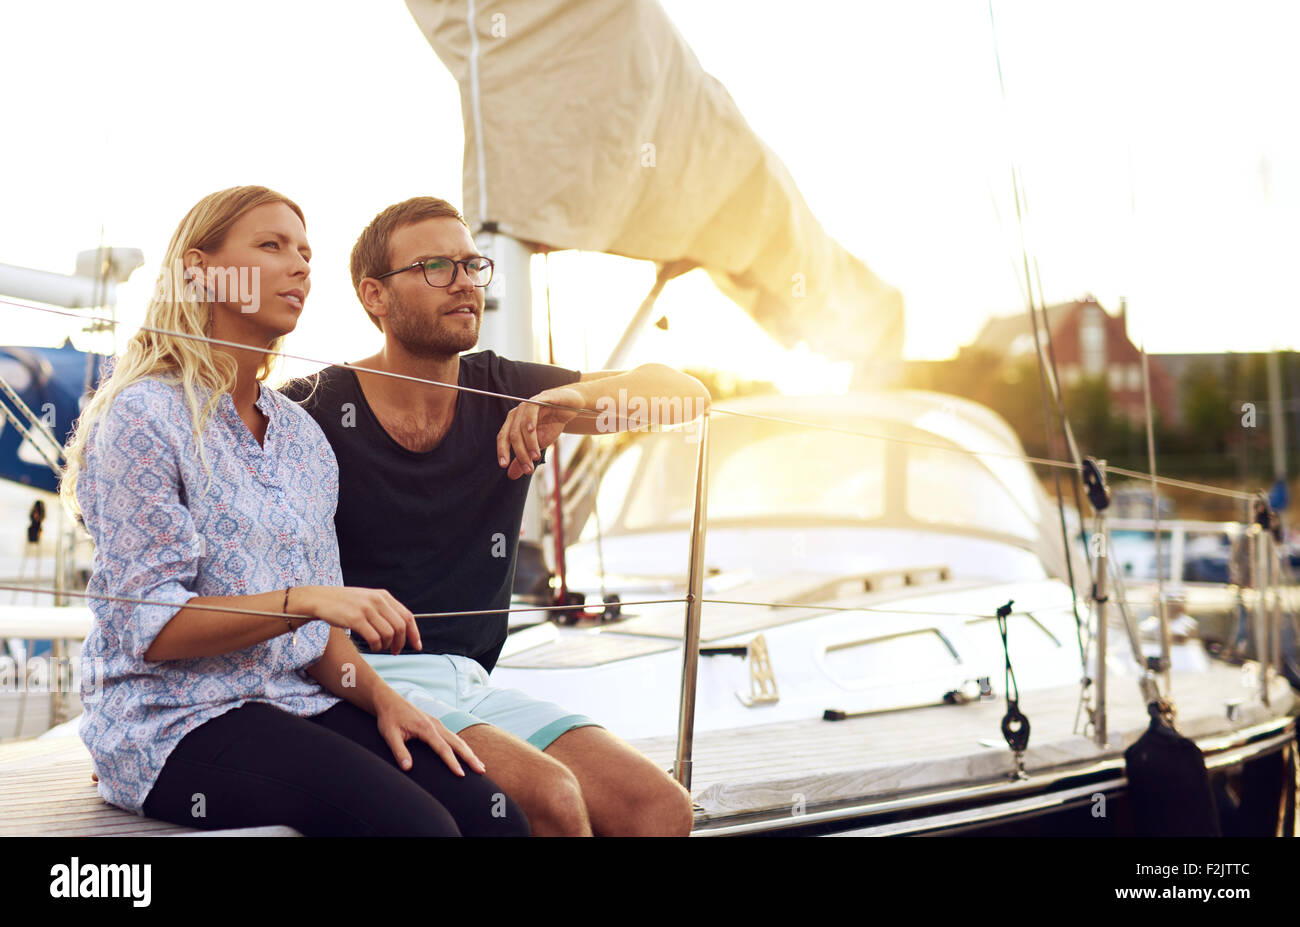 Sweet Young Lovers Sitting In Front of a Yacht and Looking Into the Distance During Sunset. Stock Photo